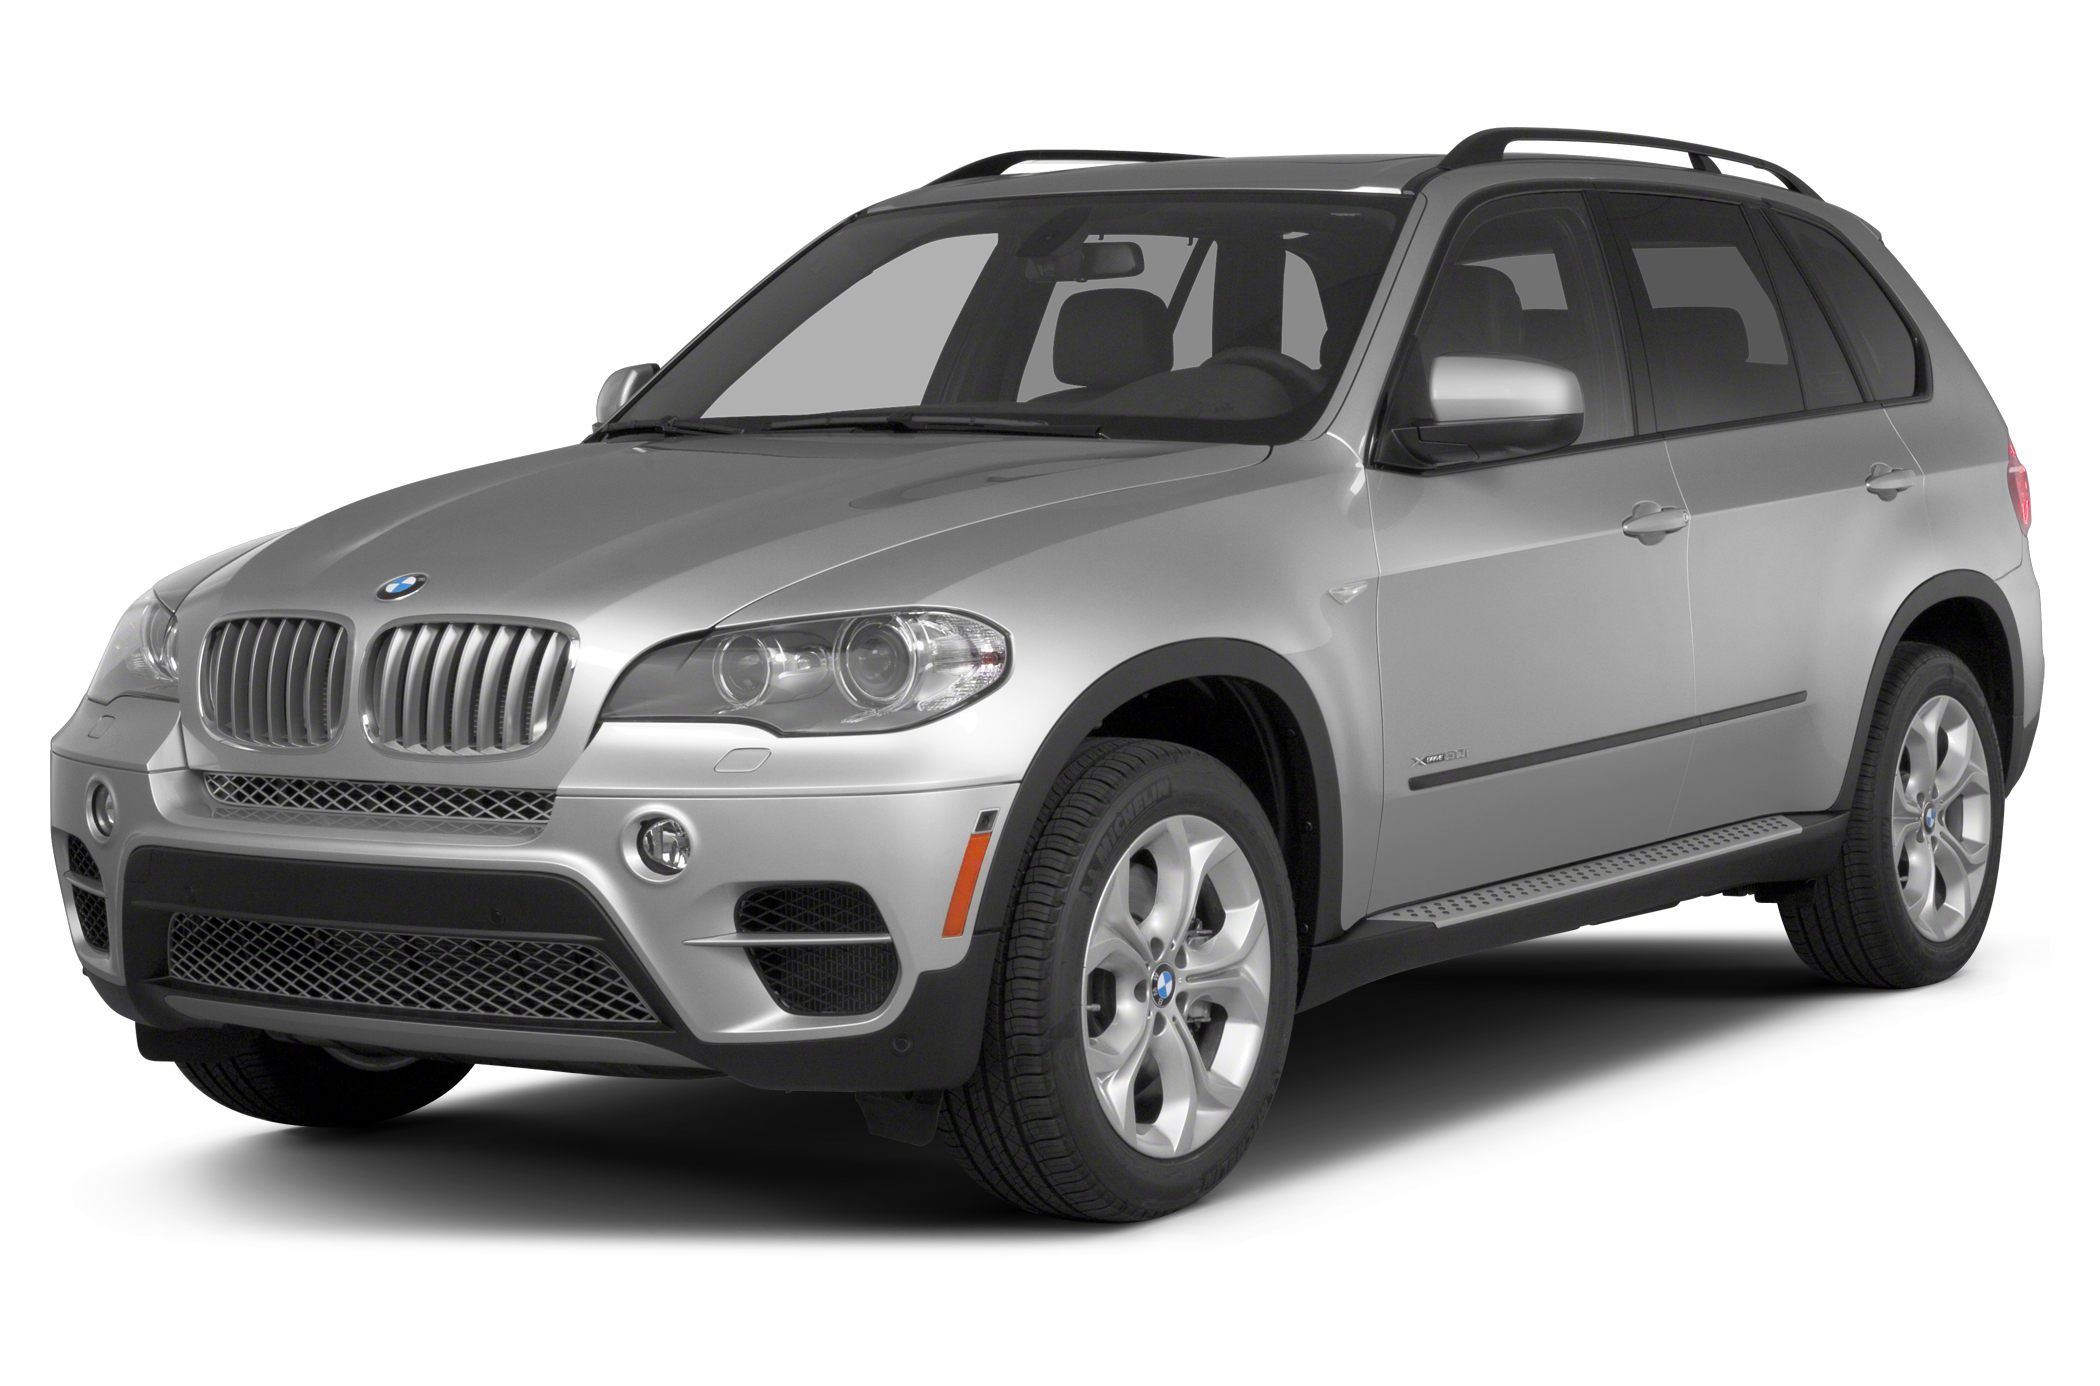 2013 BMW X5 xDrive35i This amazing Luxury Vehicle is just waiting to bring the right owner lots of